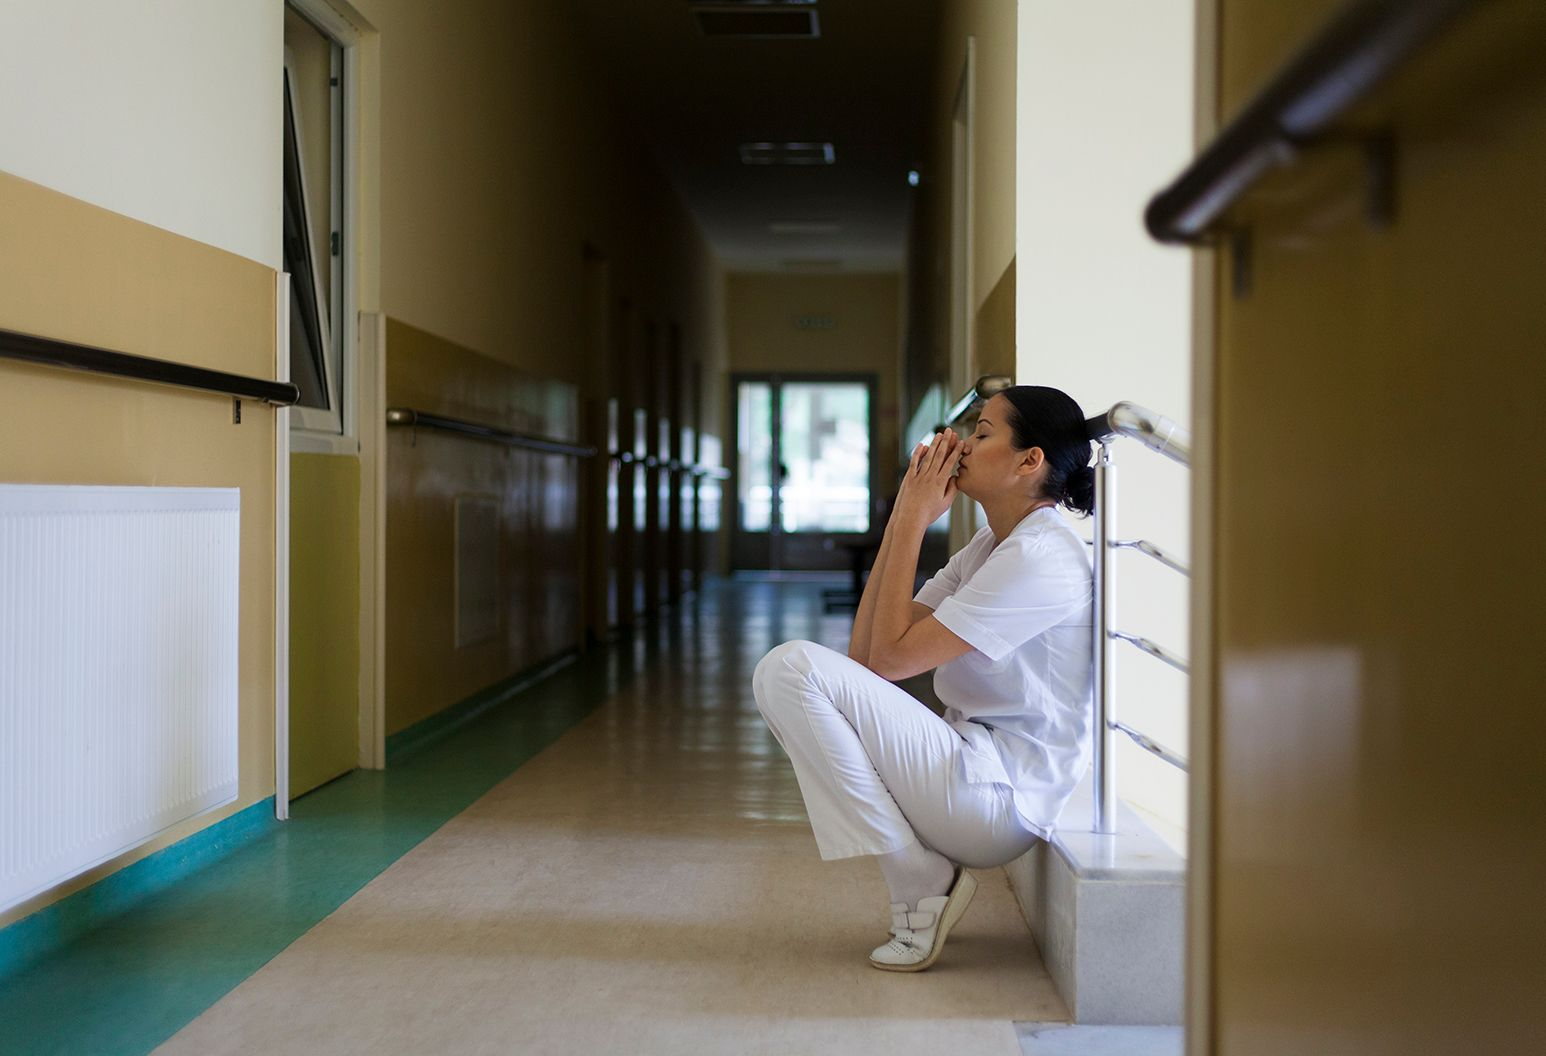 A nurse in white scrubs crouches down in a hallway looking sad.